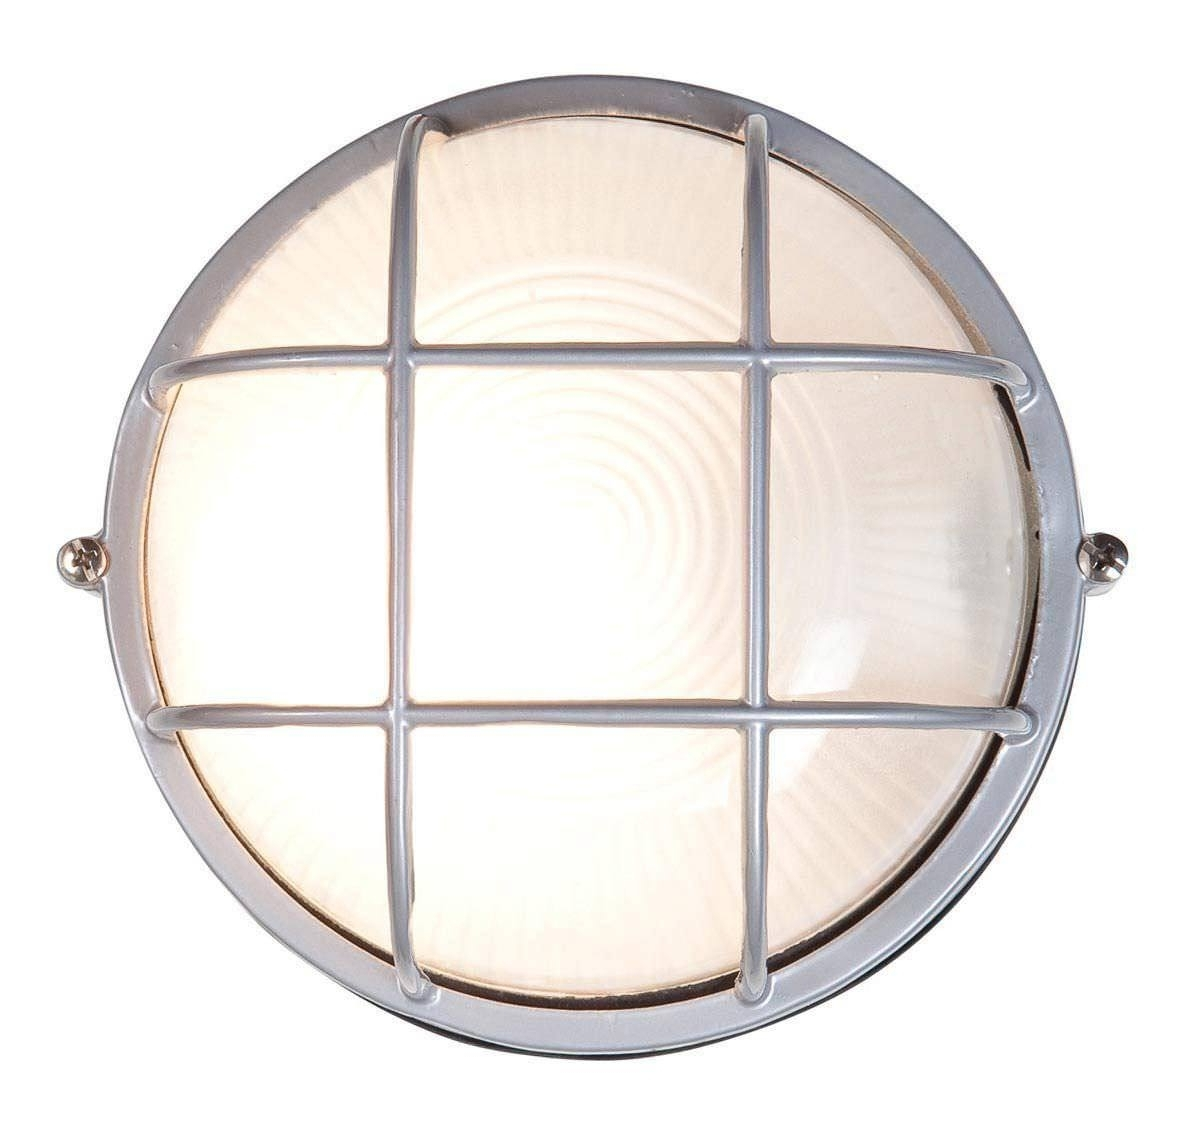 Most Recently Released Access Lighting Outdoor Wall Sconces Inside Access Lighting 20294 Nauticus 1 Light Outdoor Wall Sconce (View 14 of 20)